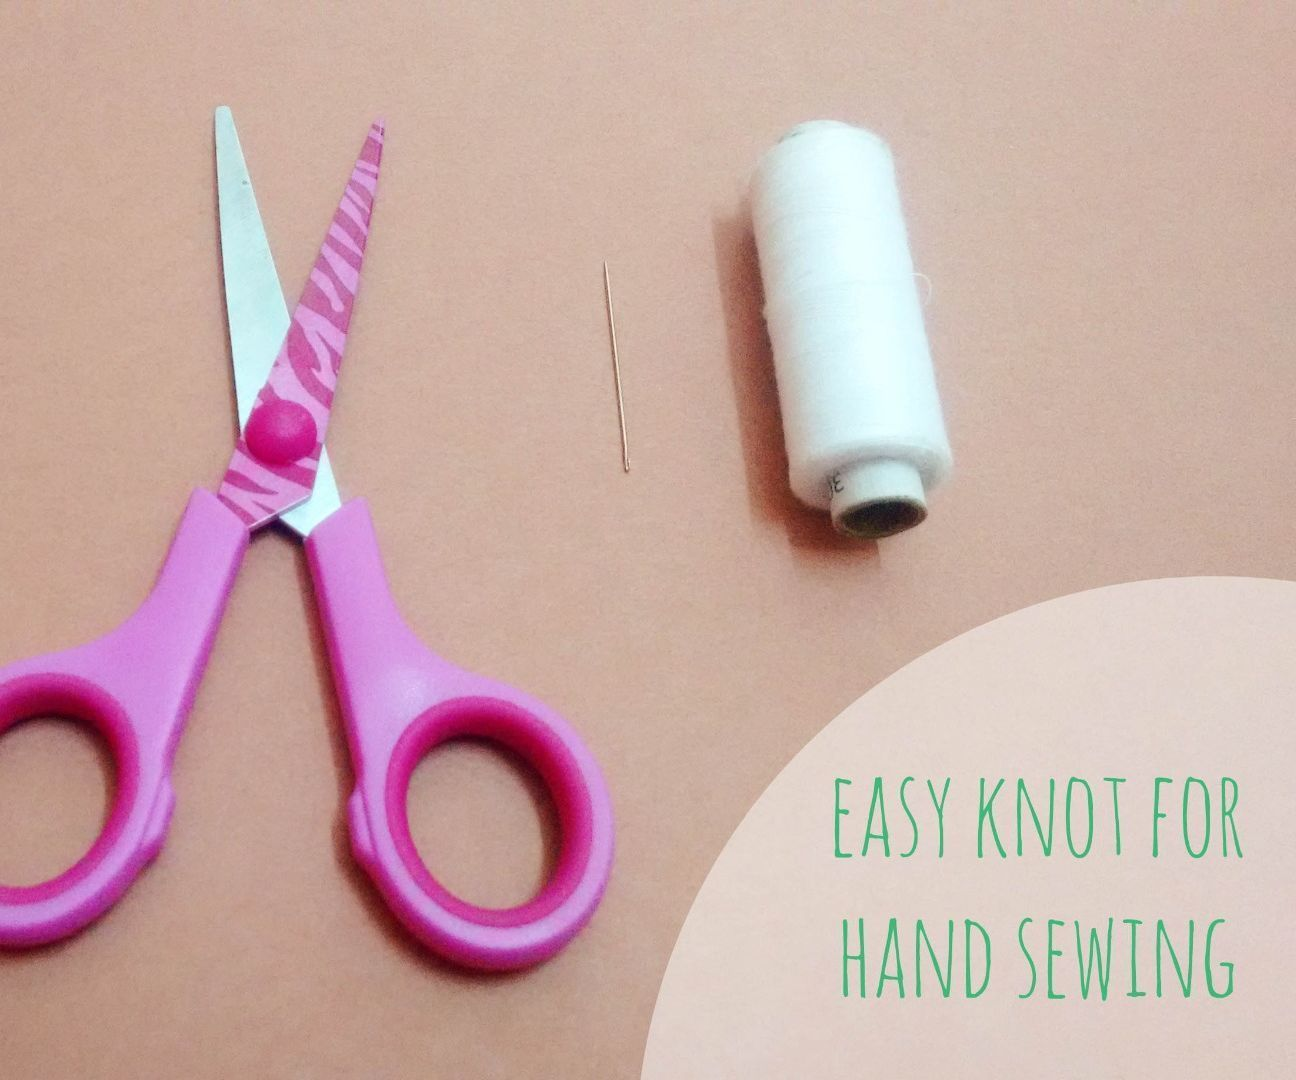 Easy knot for hand sewing